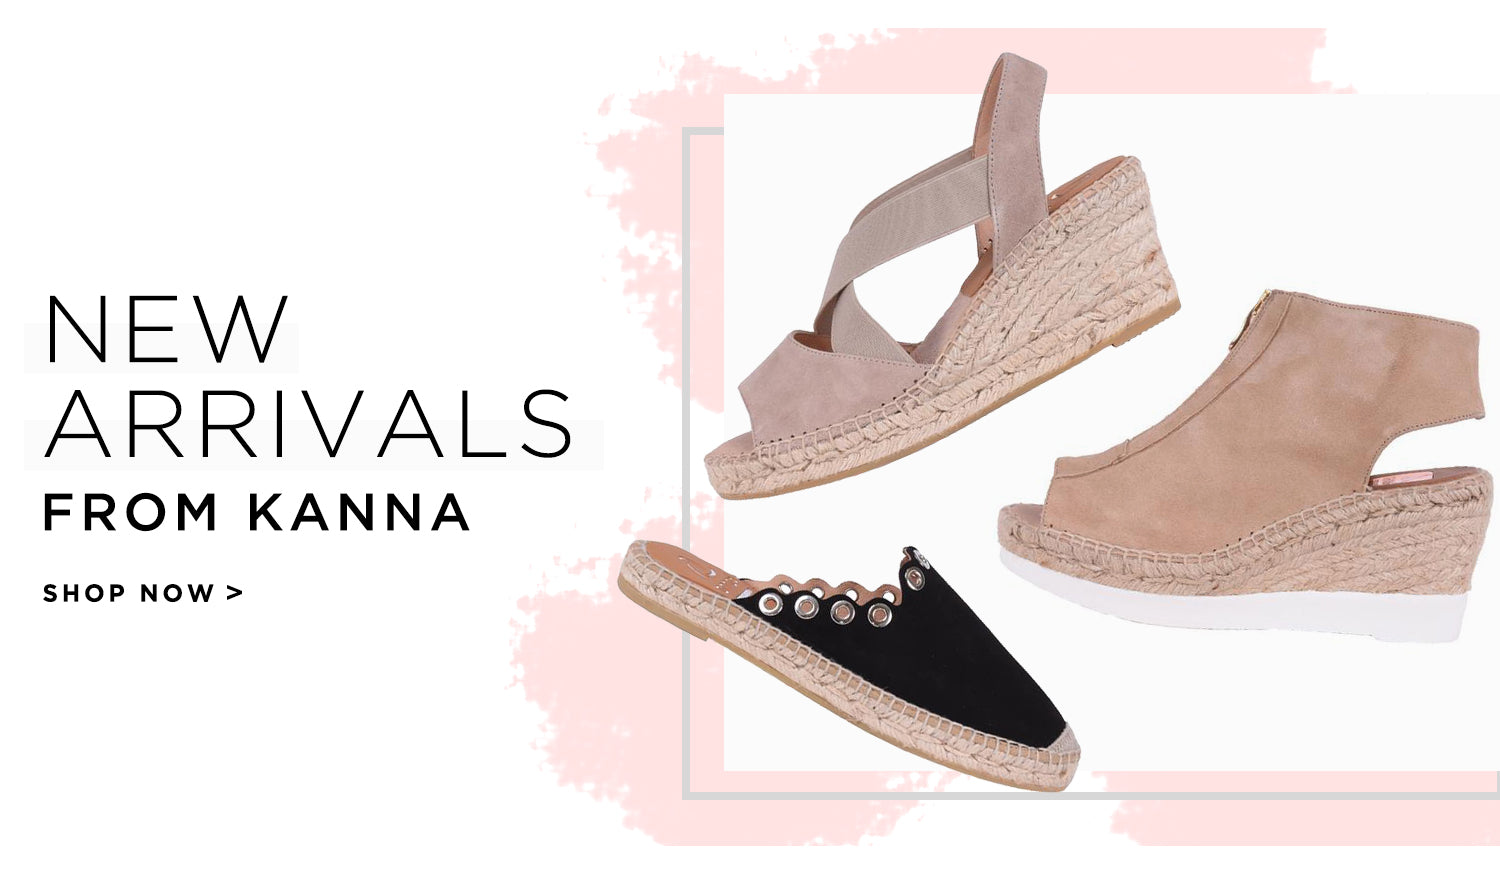 New Arrivals from footwear brand Kanna